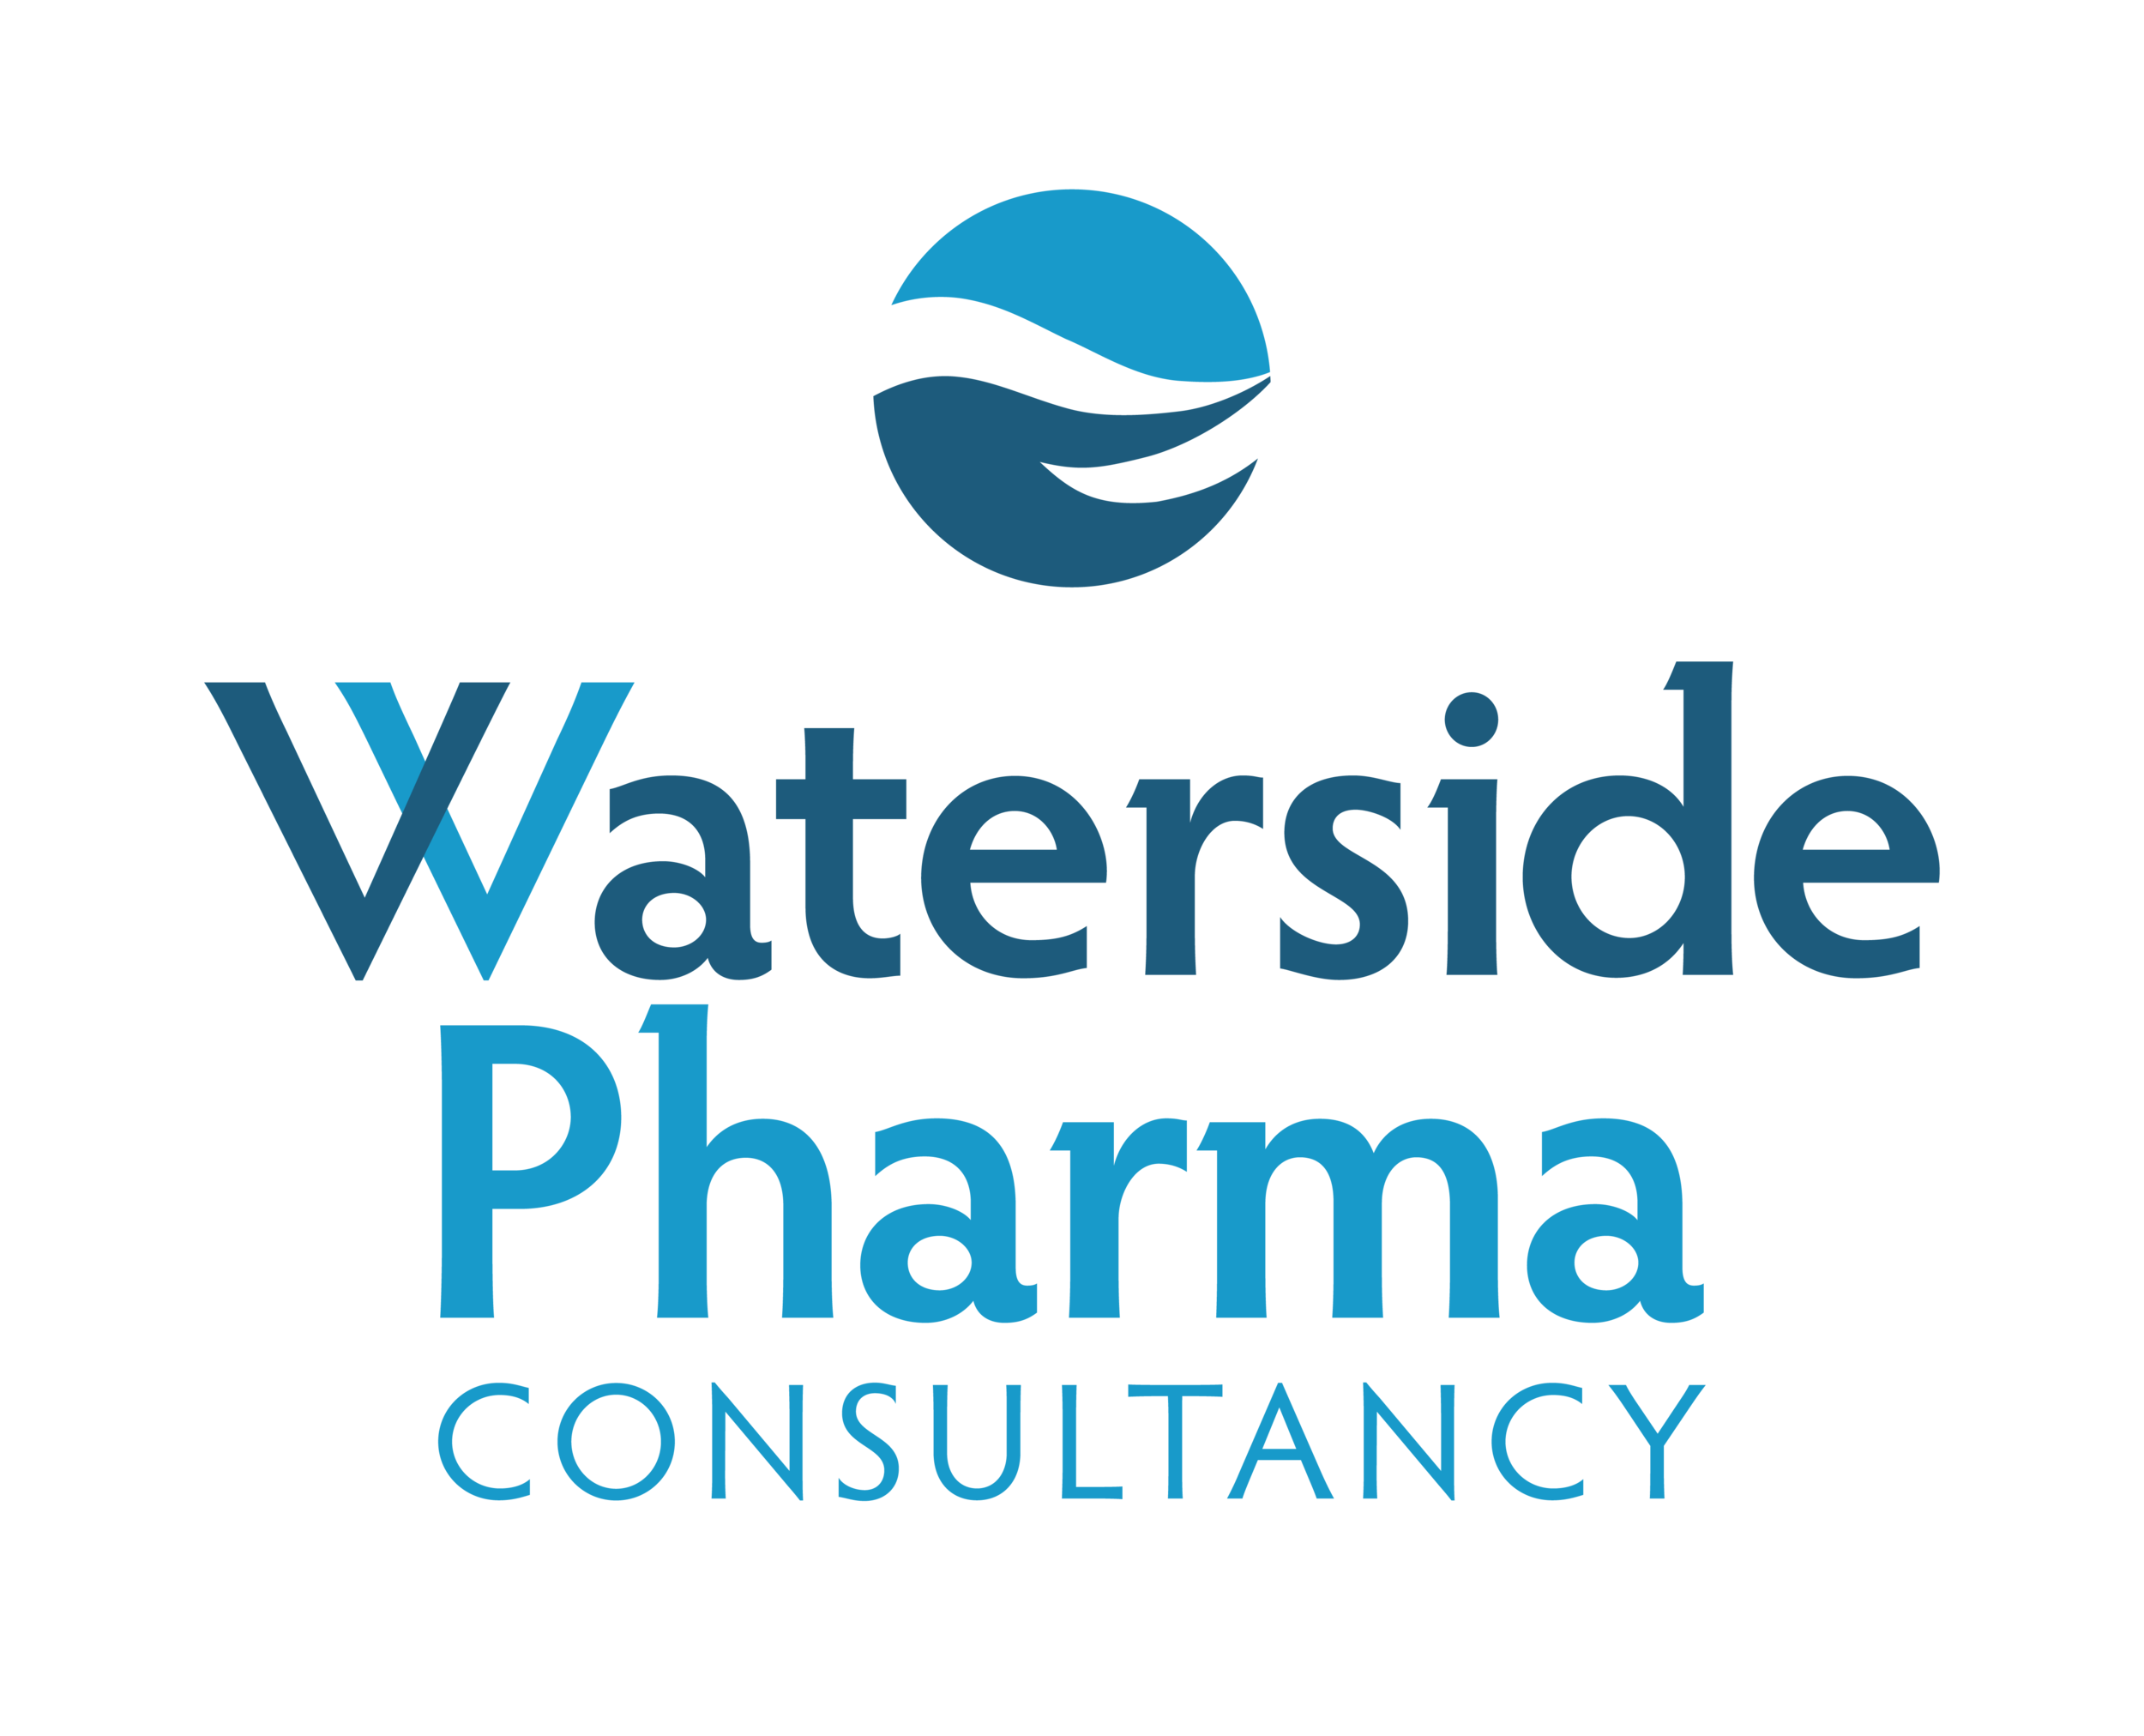 WatersidePharma_Logo stacked.png